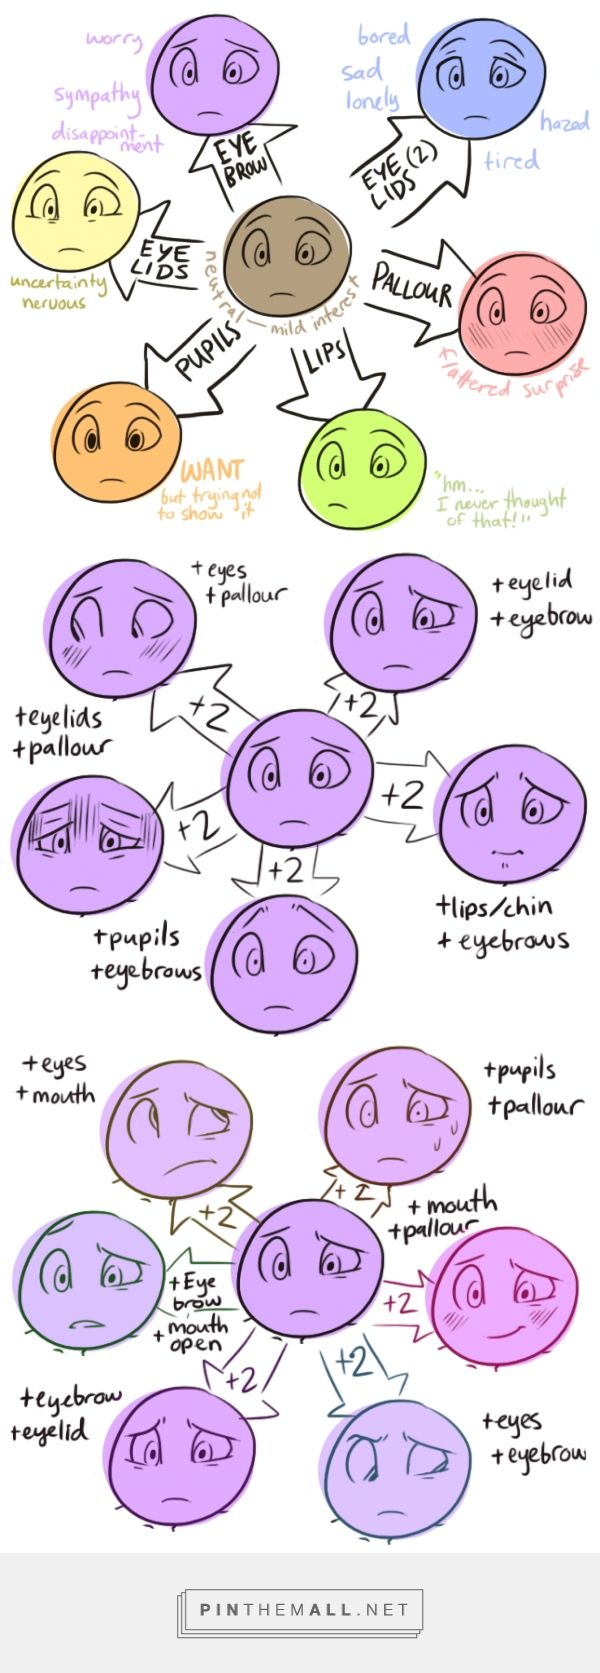 How To Step By Step Make Expressions Mean Different